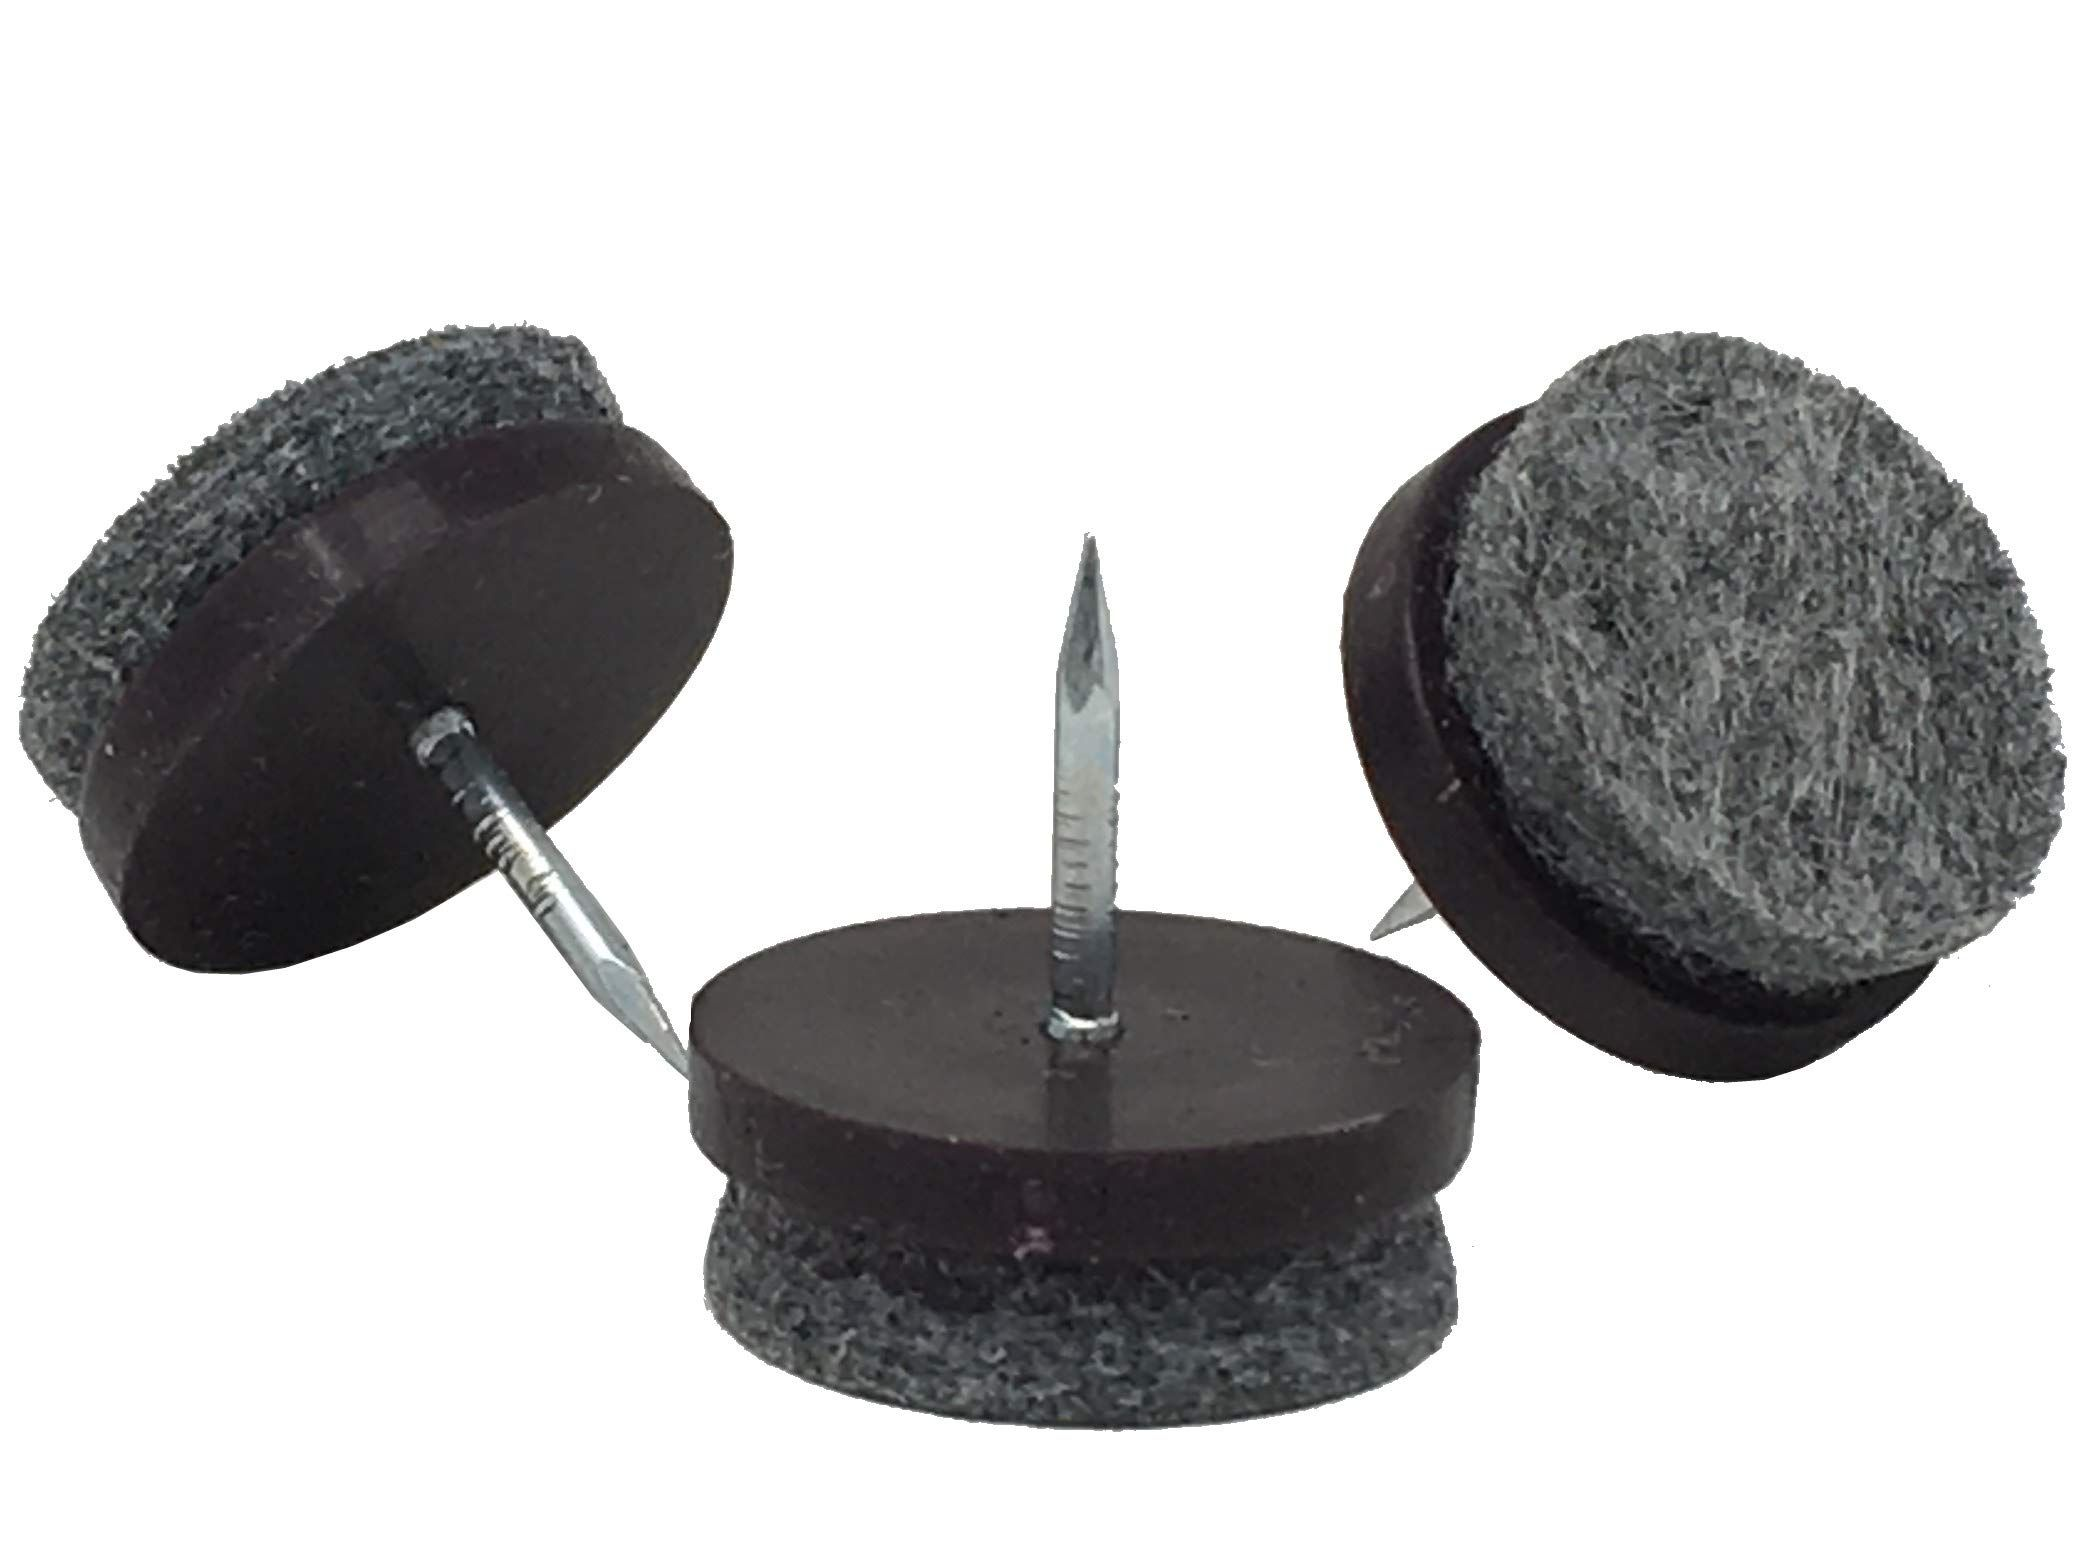 D H S 7 8 Dia Heavy Duty Felt Nail On Slider Glide Pads For Chairs Stools Tables Furniture Slides L Furniture Pads Furniture Sliders Felt Furniture Pads